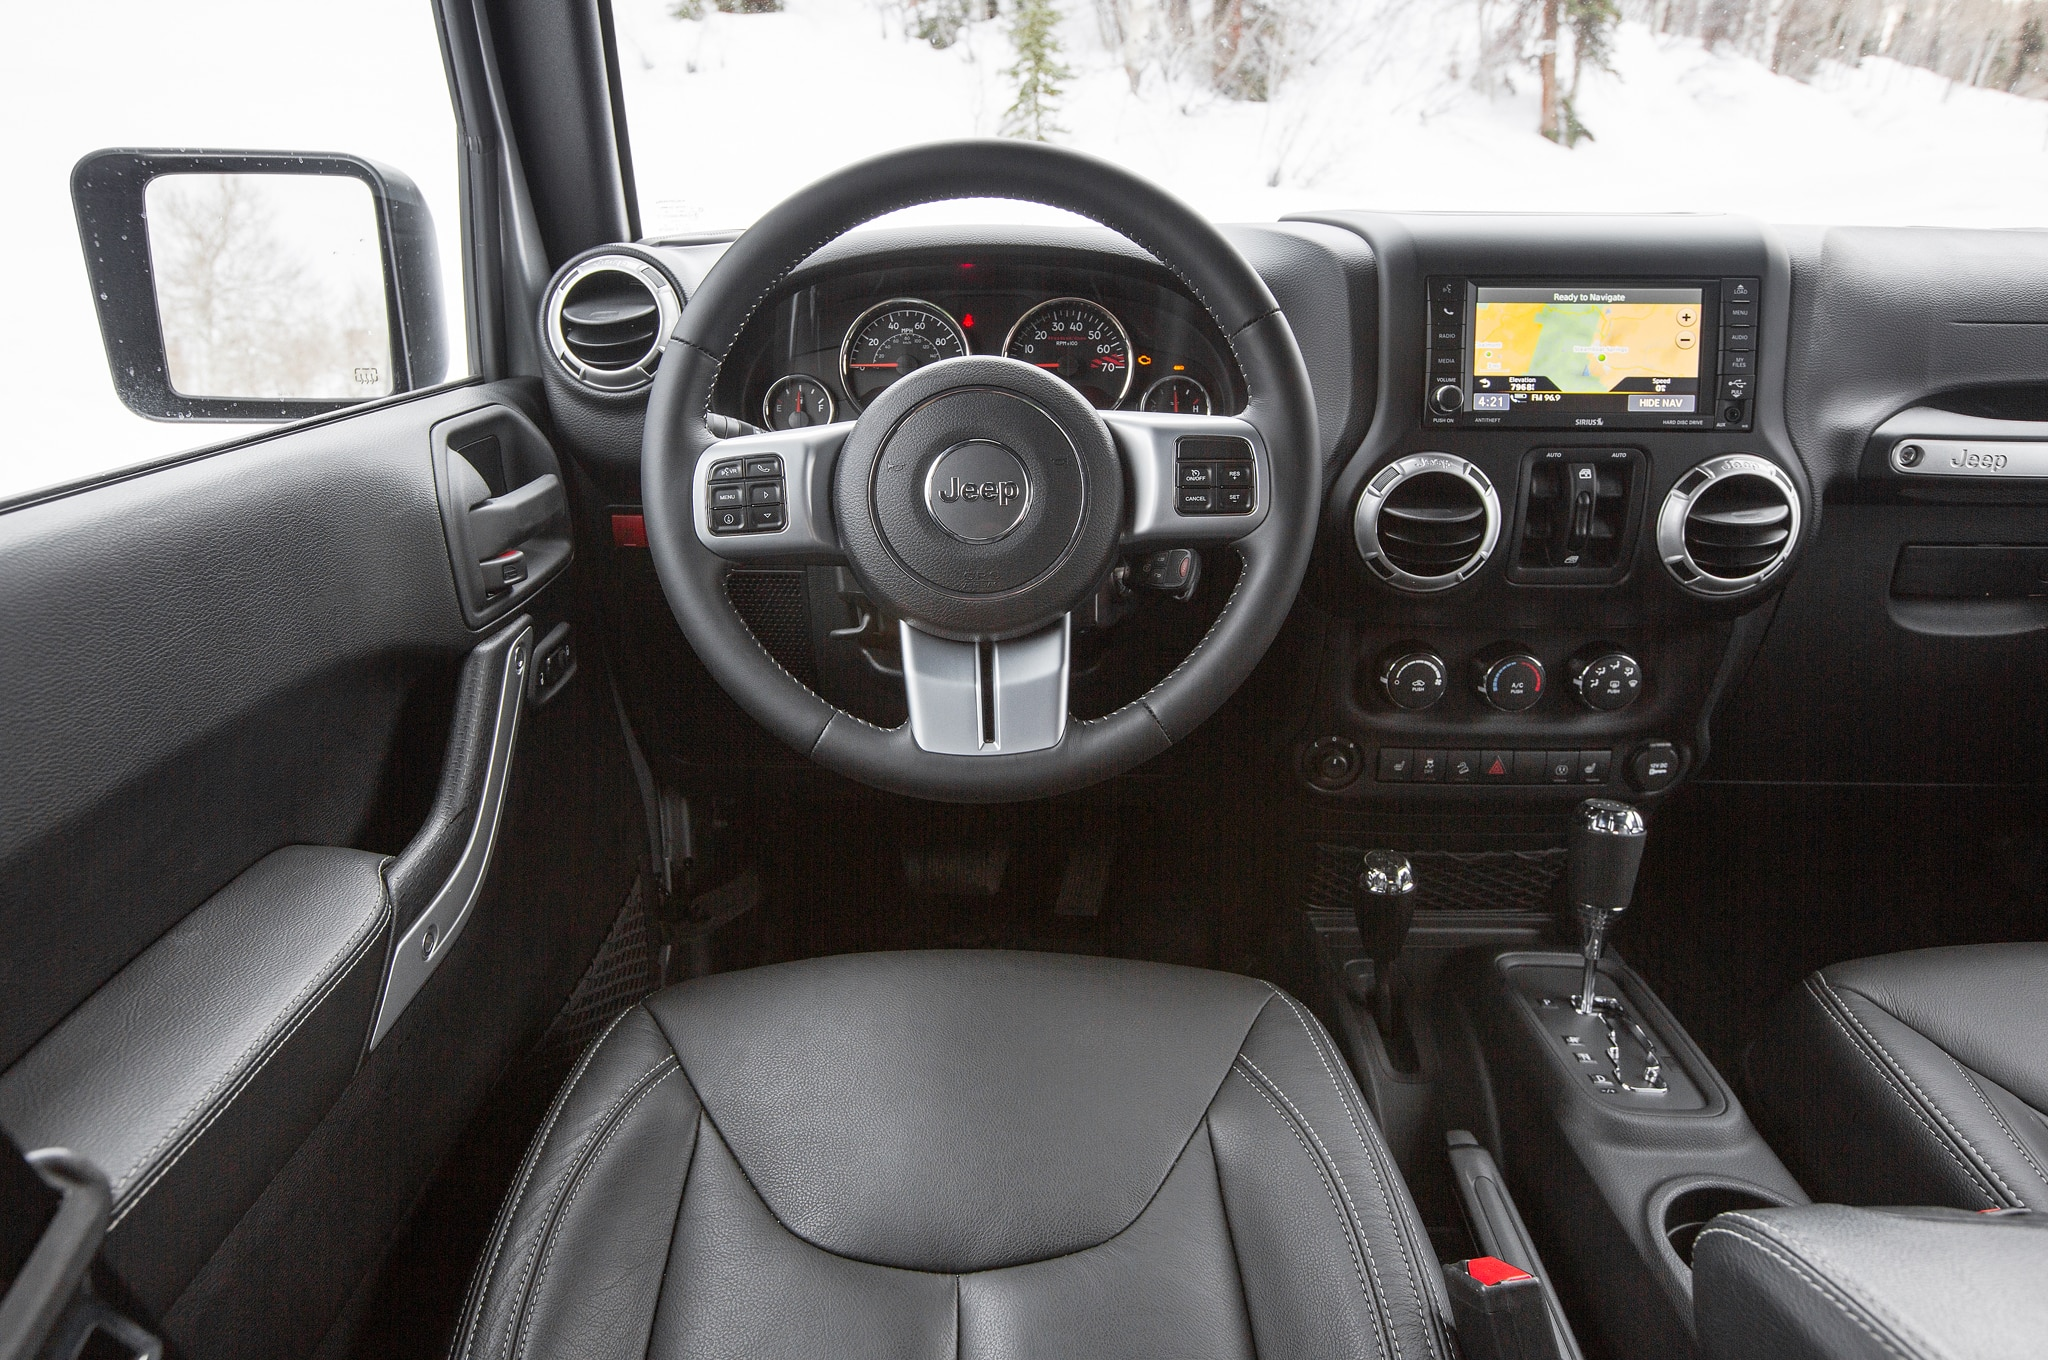 Jeep Wrangler 2016 Interior >> Jeep Wrangler Unlimited Rubicon 2016: Primera Prueba